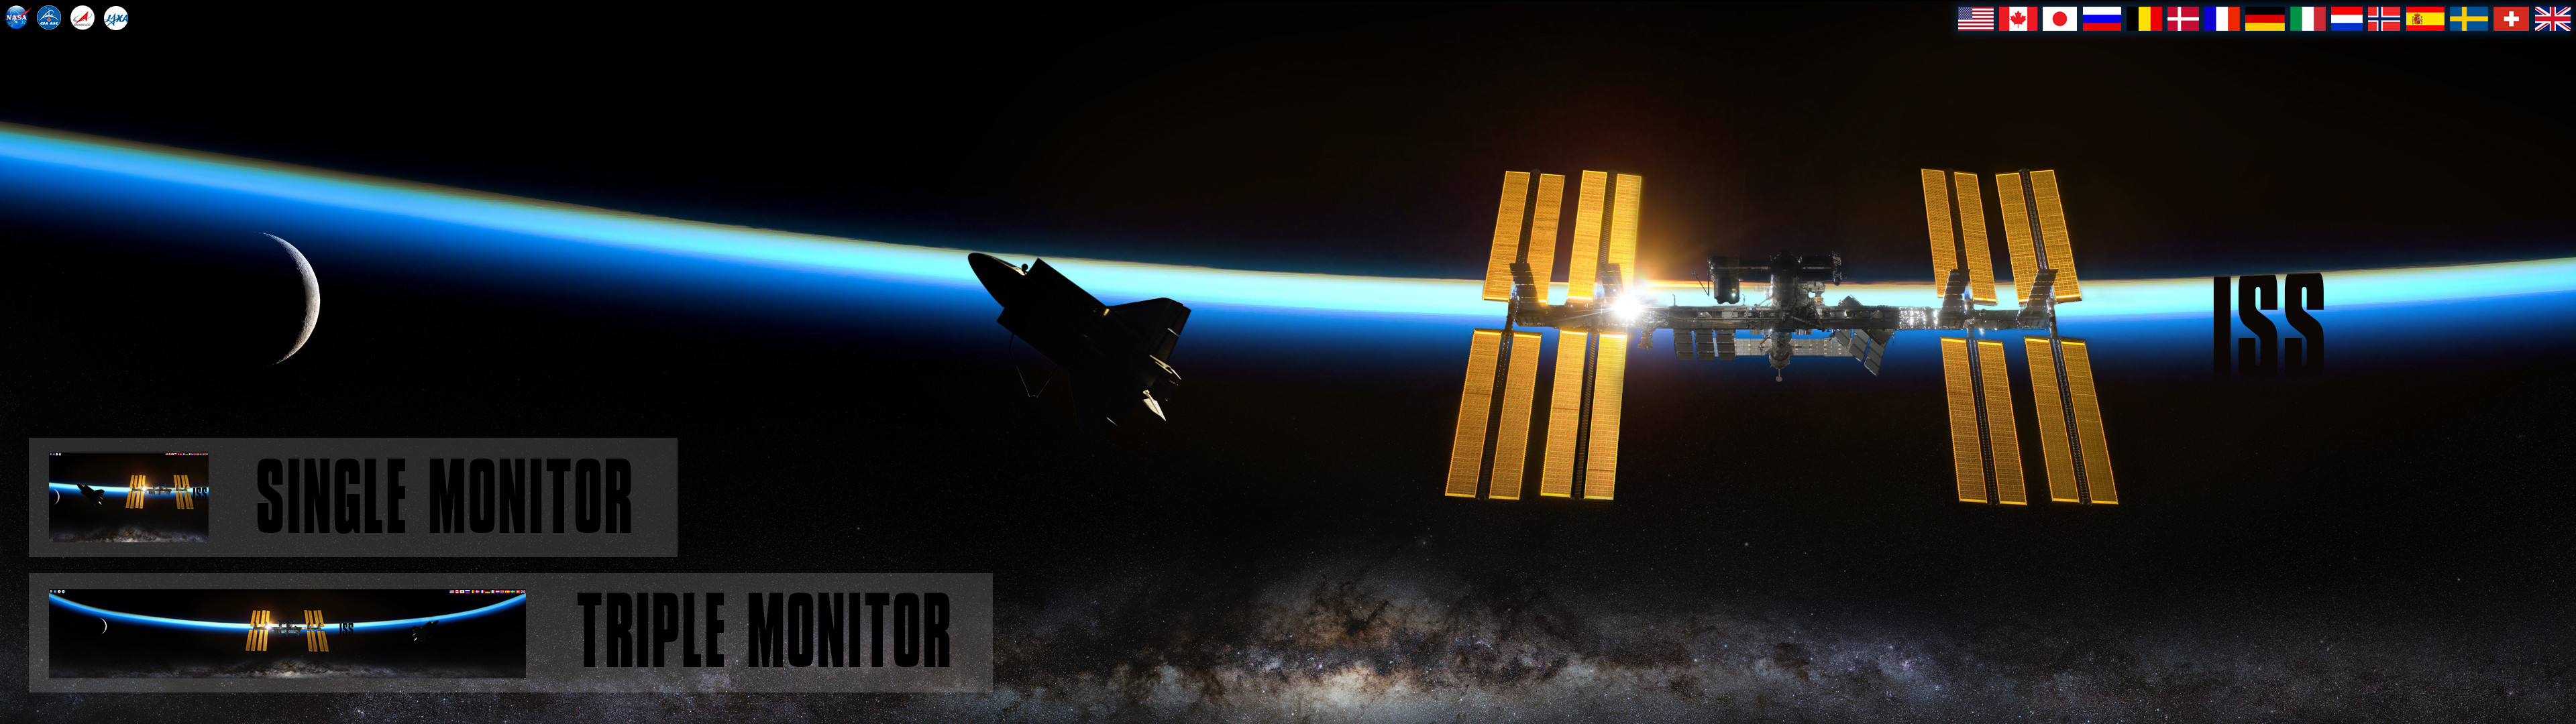 … NASA ISS – International Space Station Wallpaper by foxgguy2001